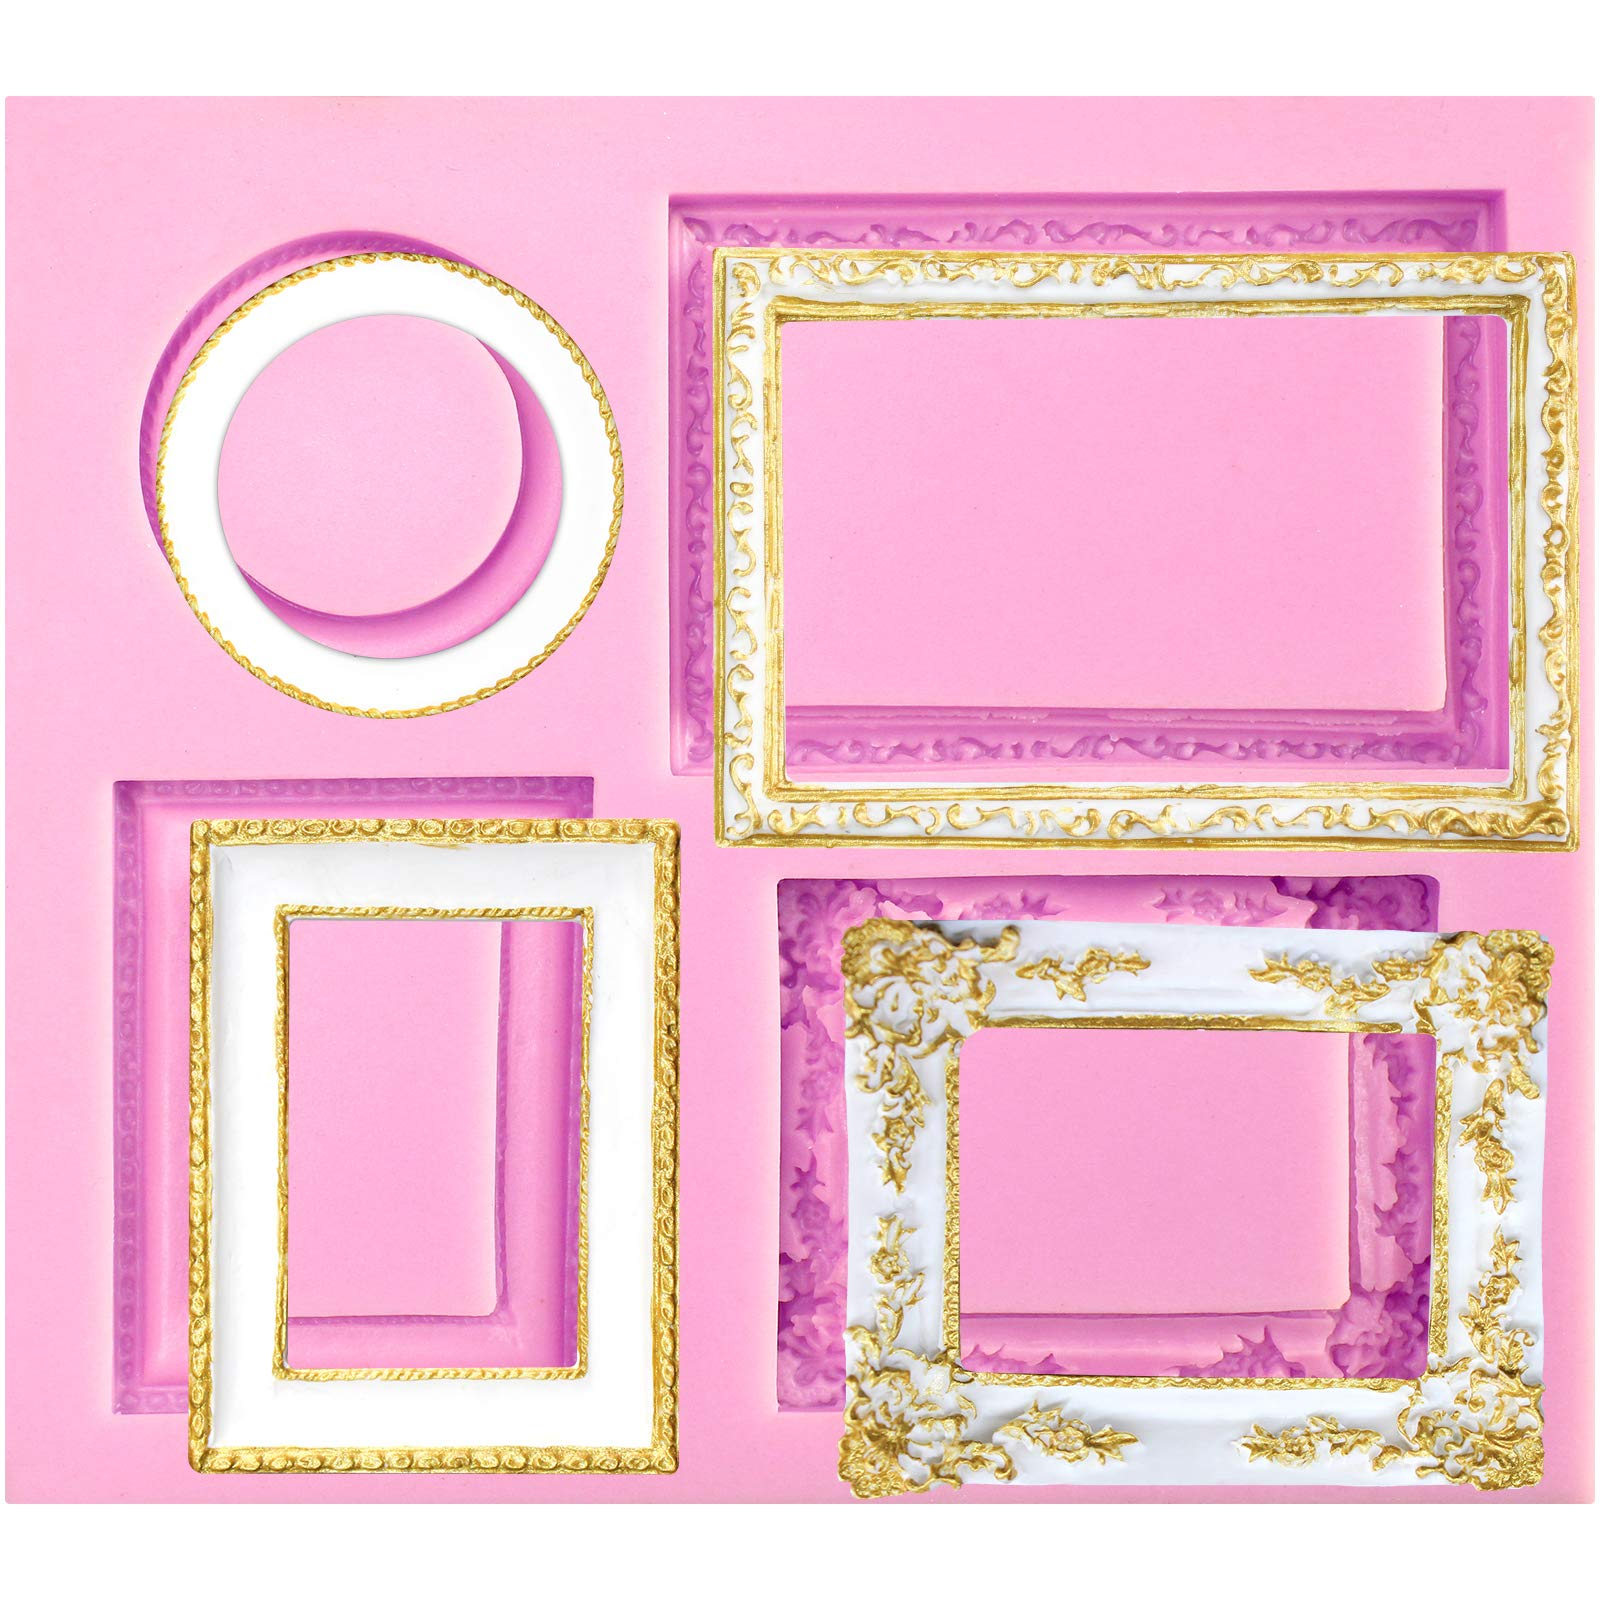 FUNSHOWCASE Mirror Frame Candy Silicone Mold, with Heart Shape for Sugarcraft, Cake Decoration, Cupcake Topper, Chocolate, Fondant, Polymer Clay, Epoxy Resin, Crafting Projects